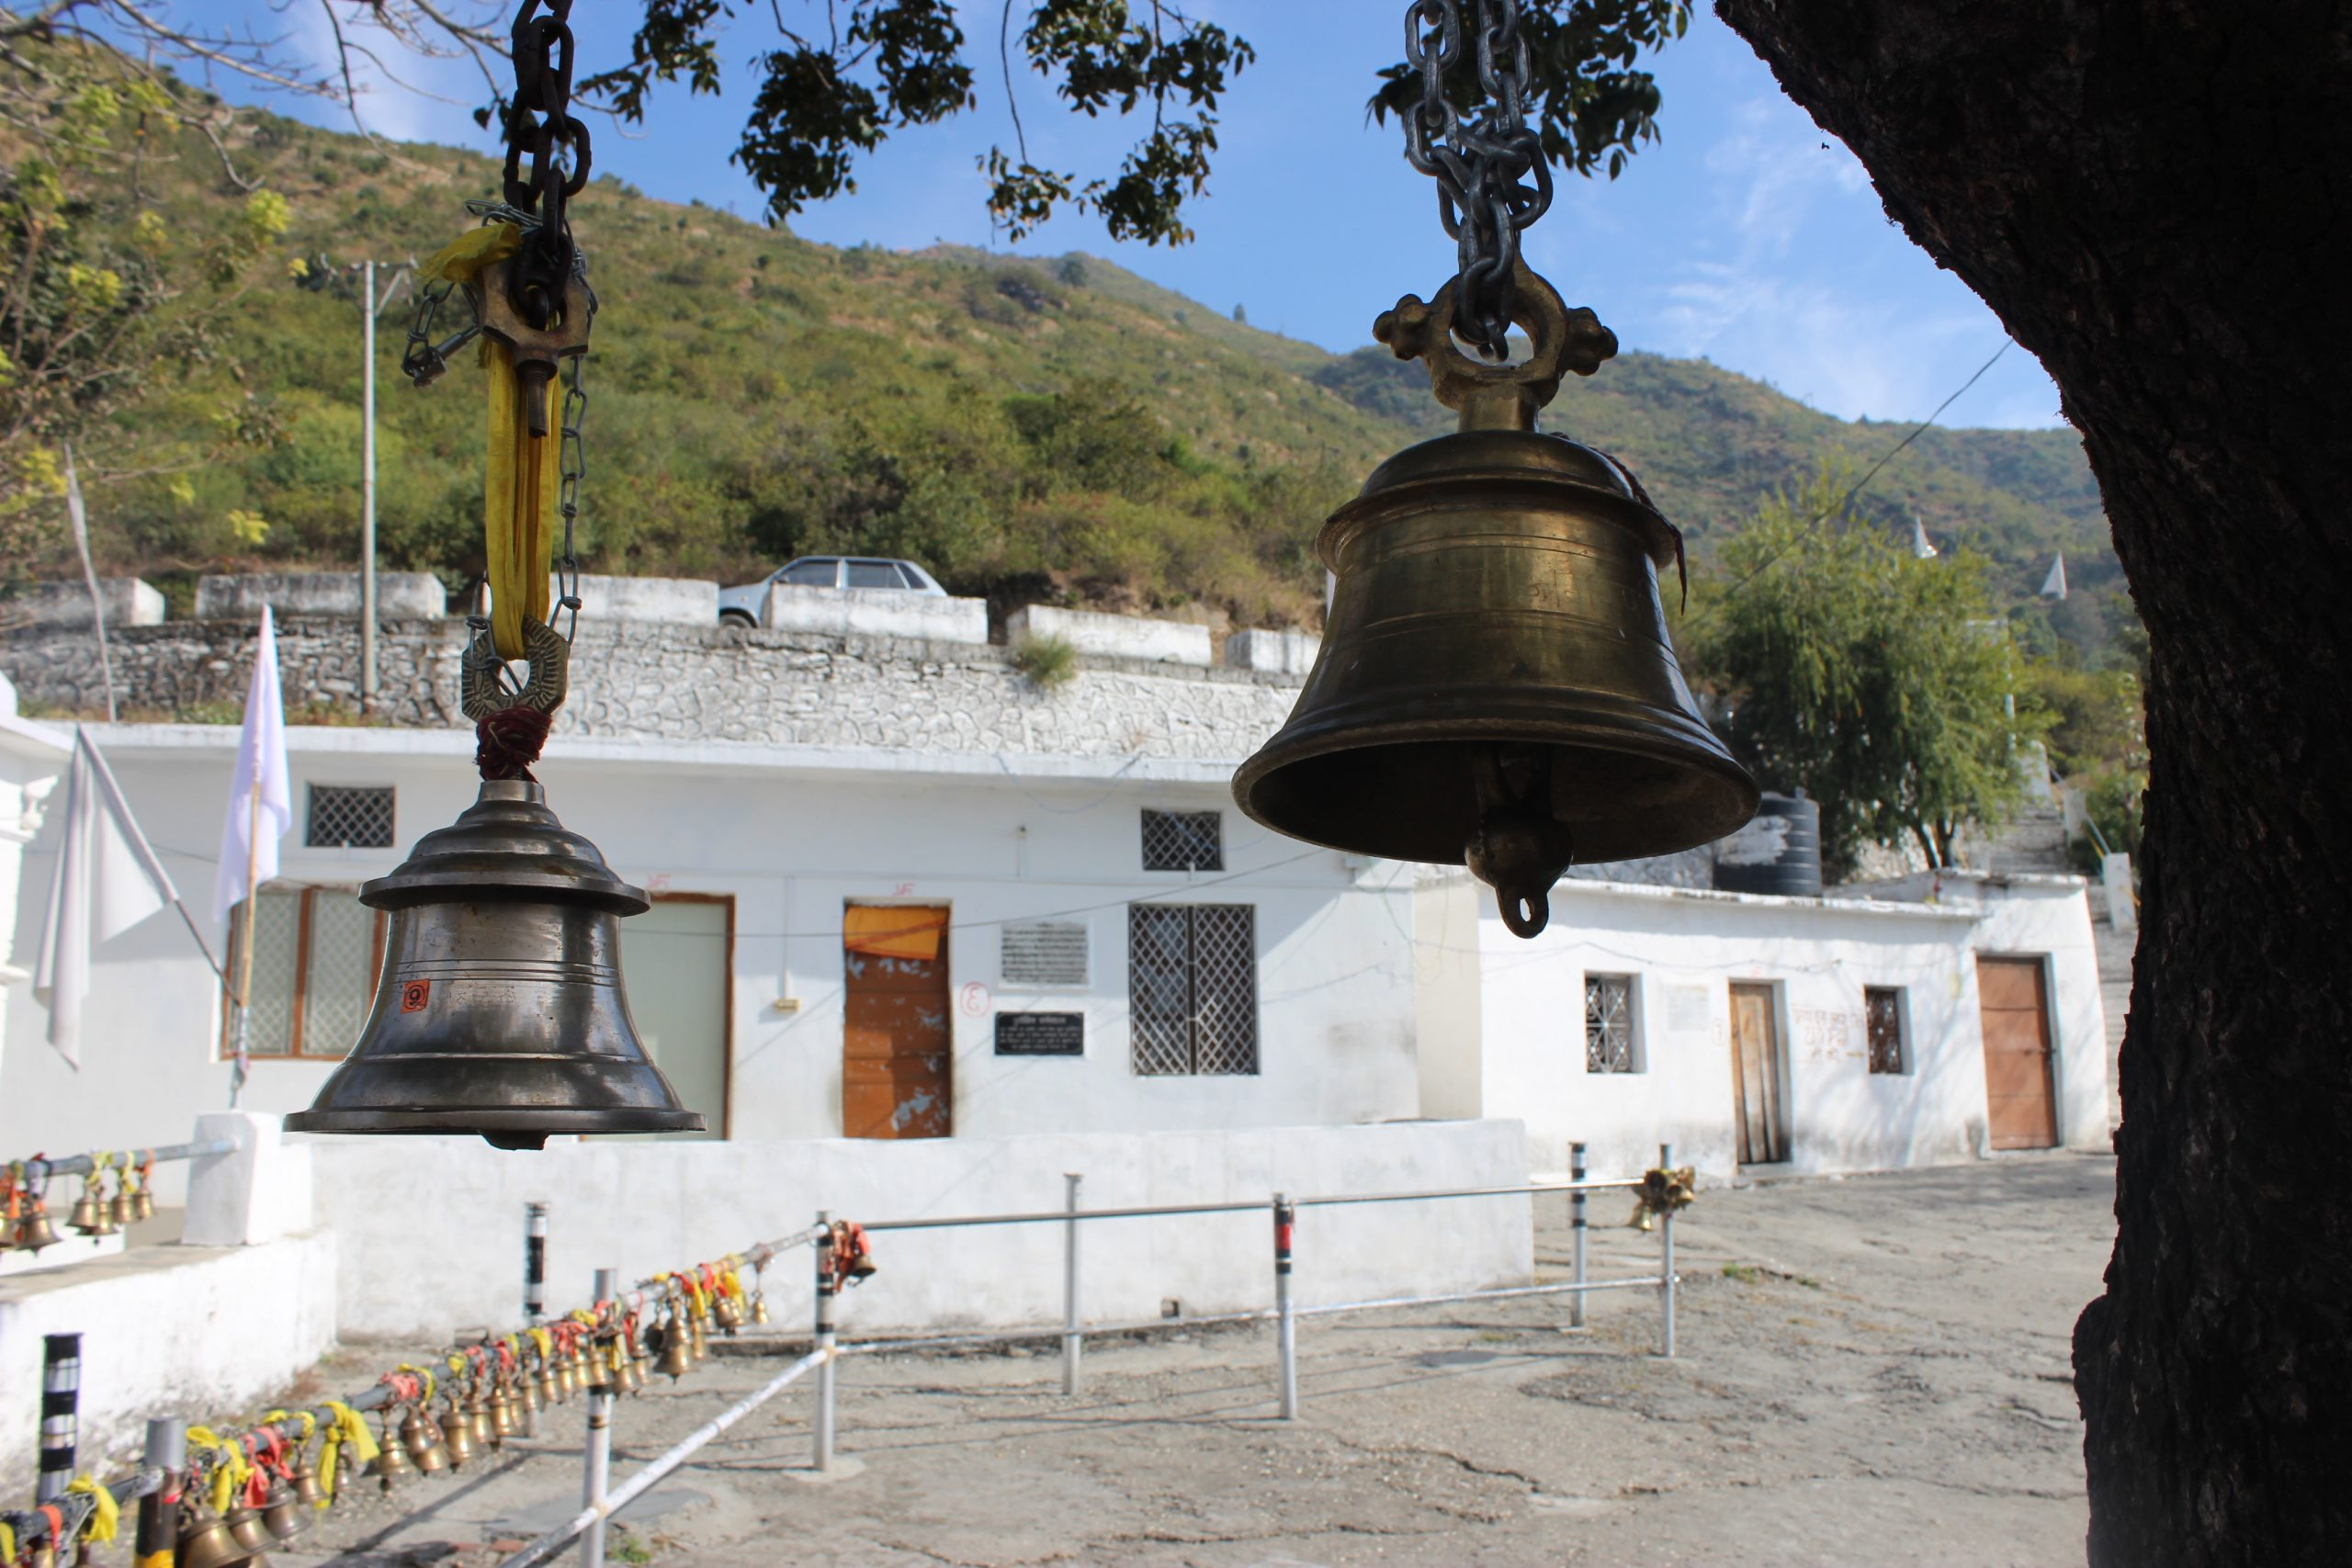 temple and temple bells